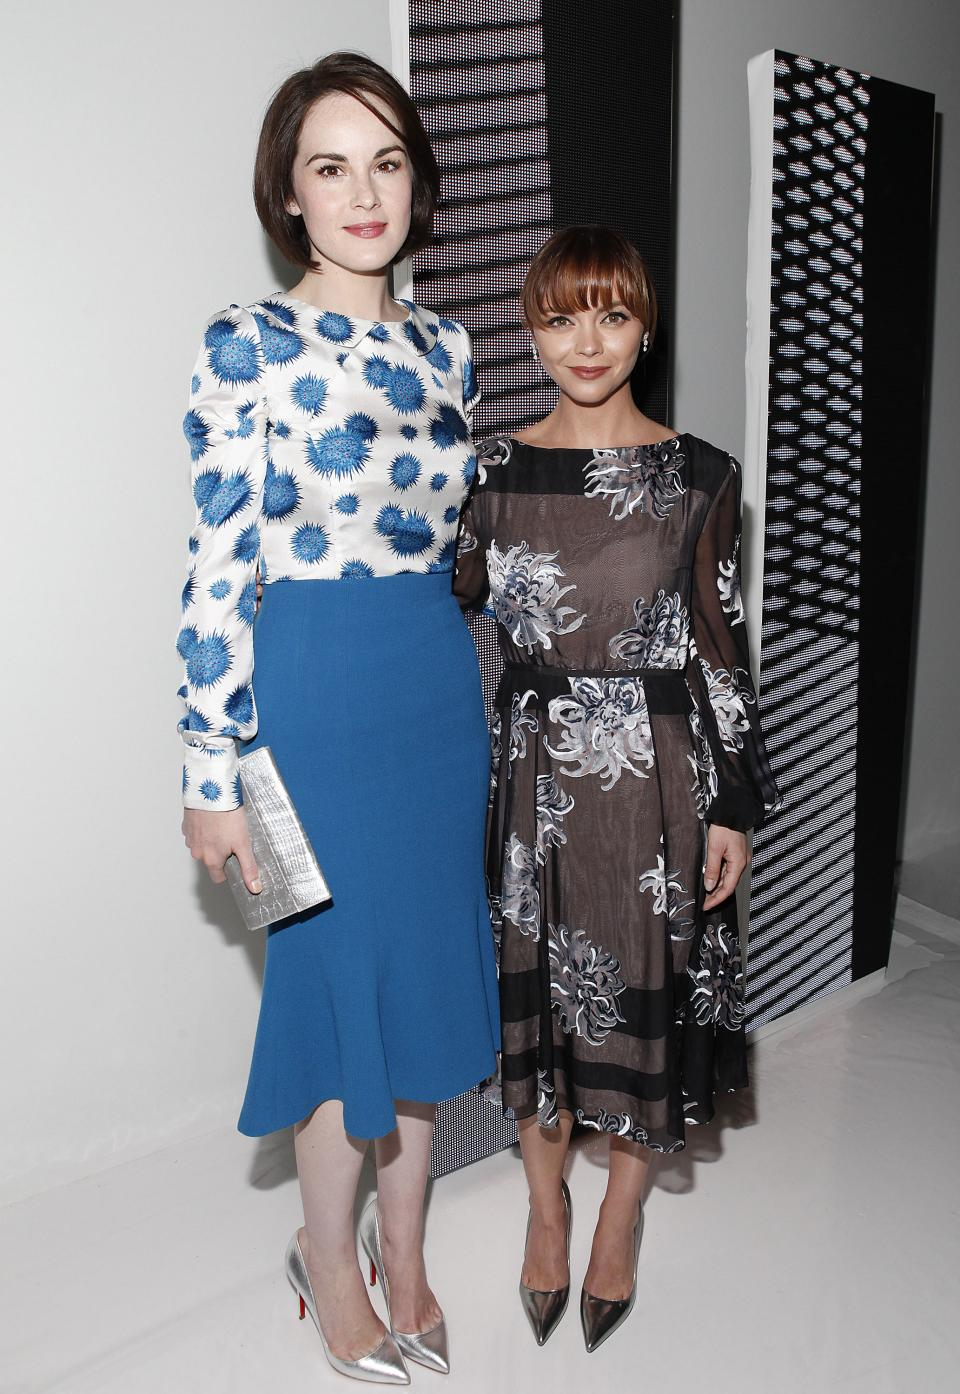 Michelle Dockery, left, and Christina Ricci attend the Carolina Herrera Spring 2014 collection on Monday, Sept. 9, 2013, during Mercedes-Benz Fashion Week in New York. (Photo by Amy Sussman/Invision/AP)